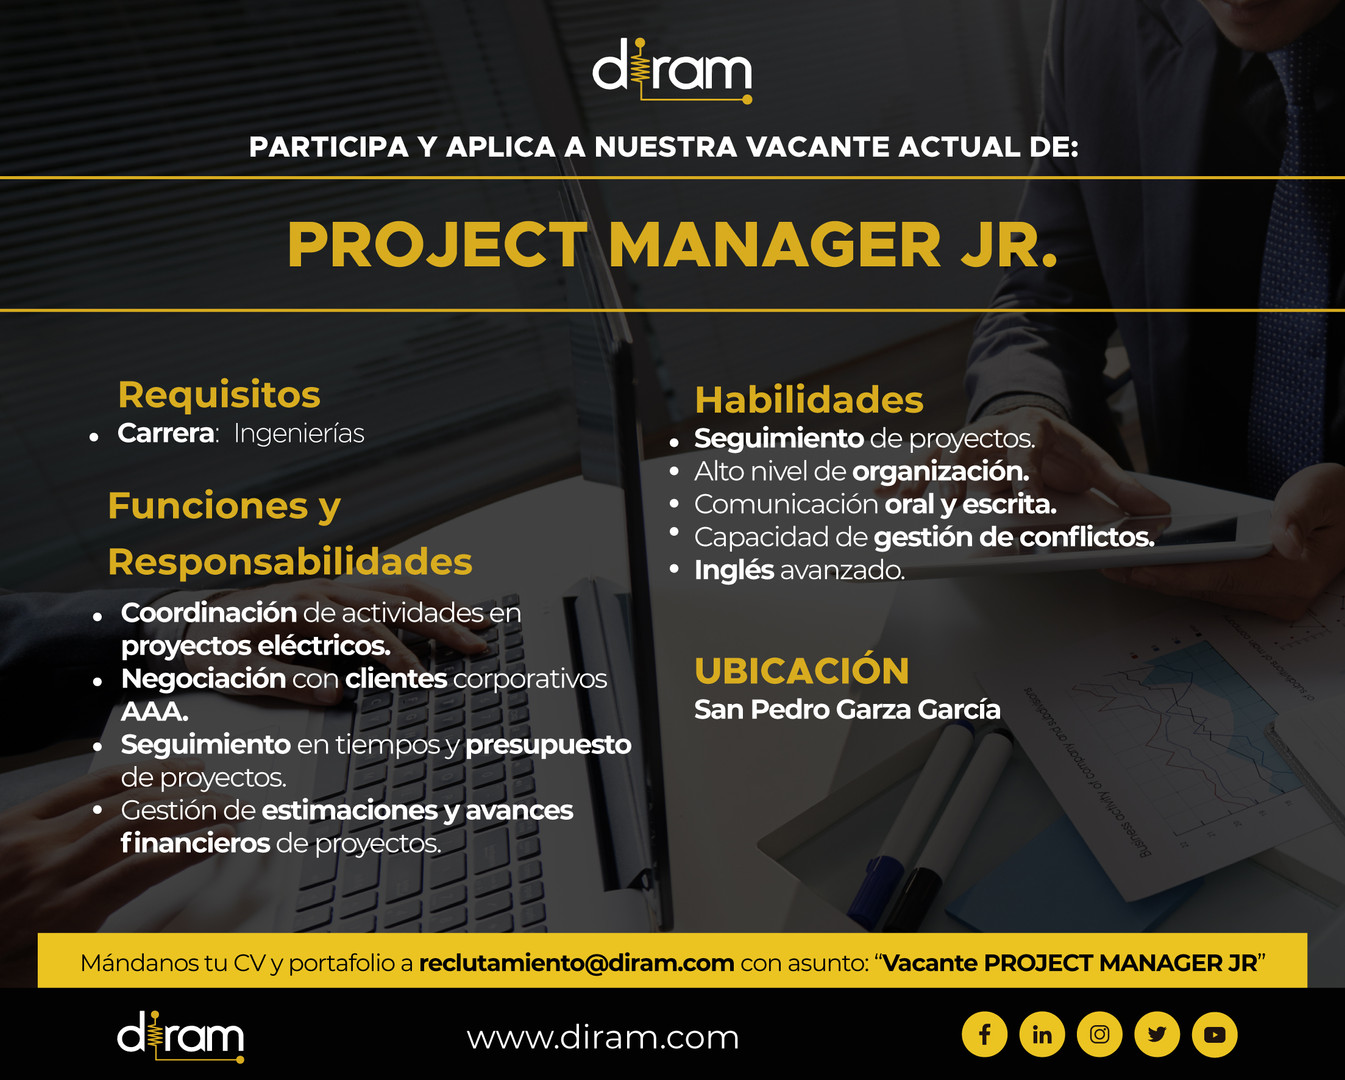 Project Manager JR